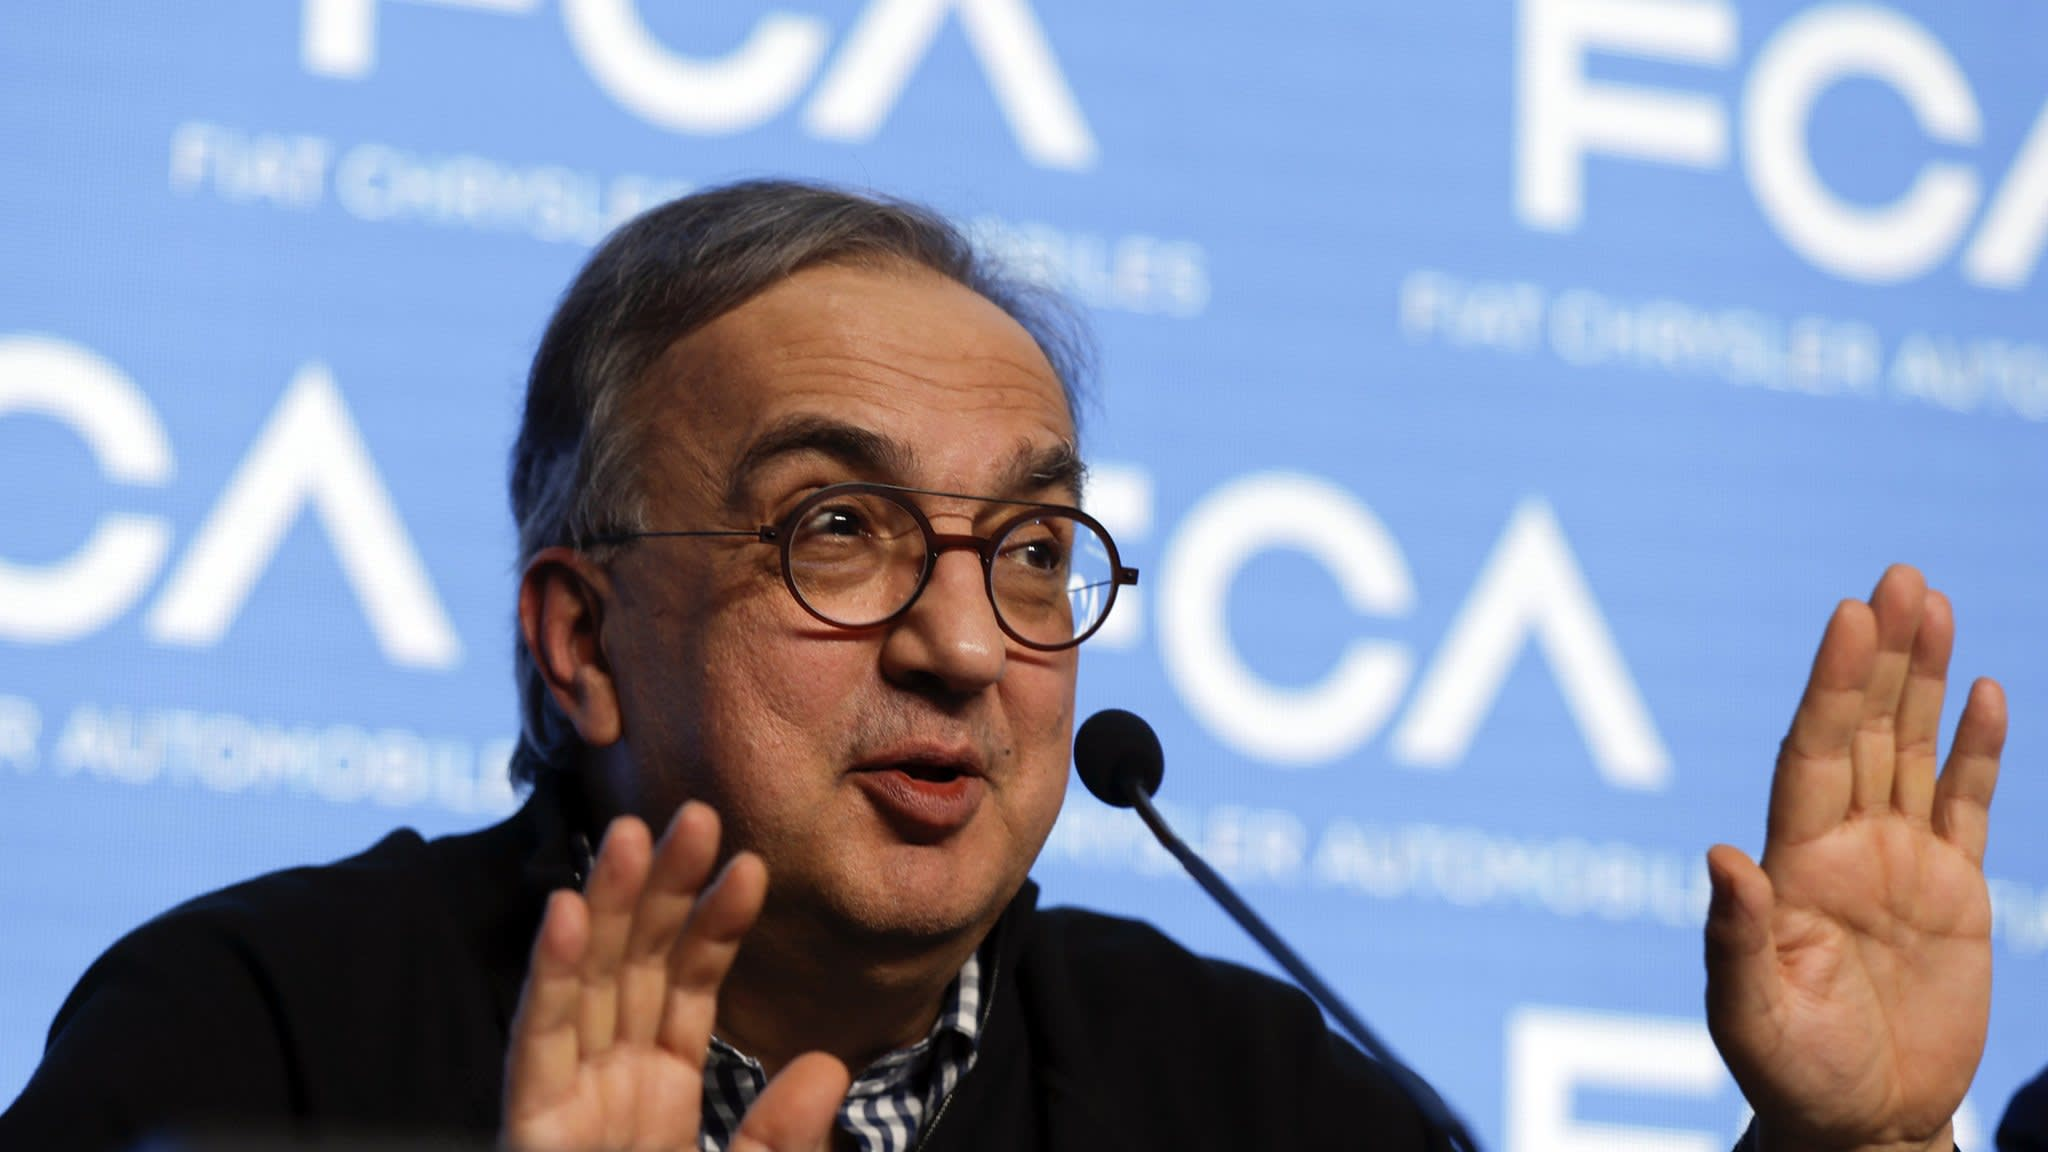 Sergio Marchionne leaves Fiat Chrysler due to ill health